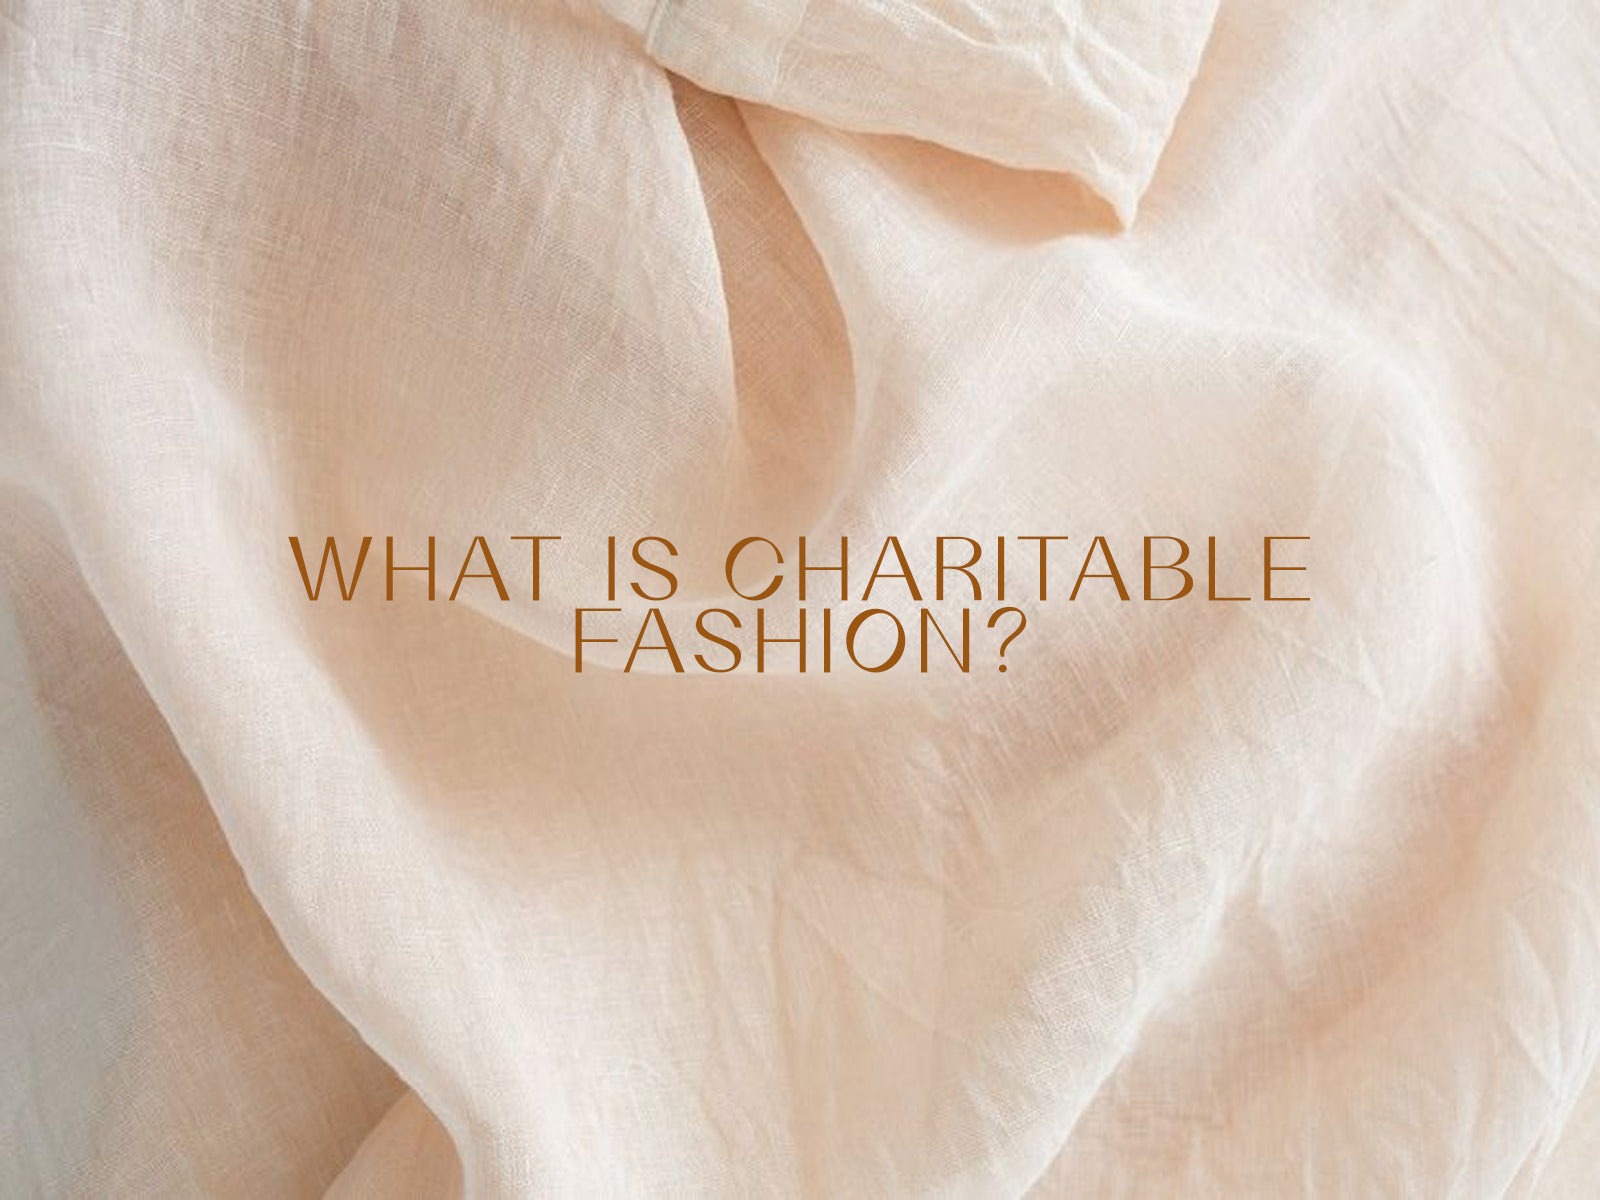 What is charitable fashion?